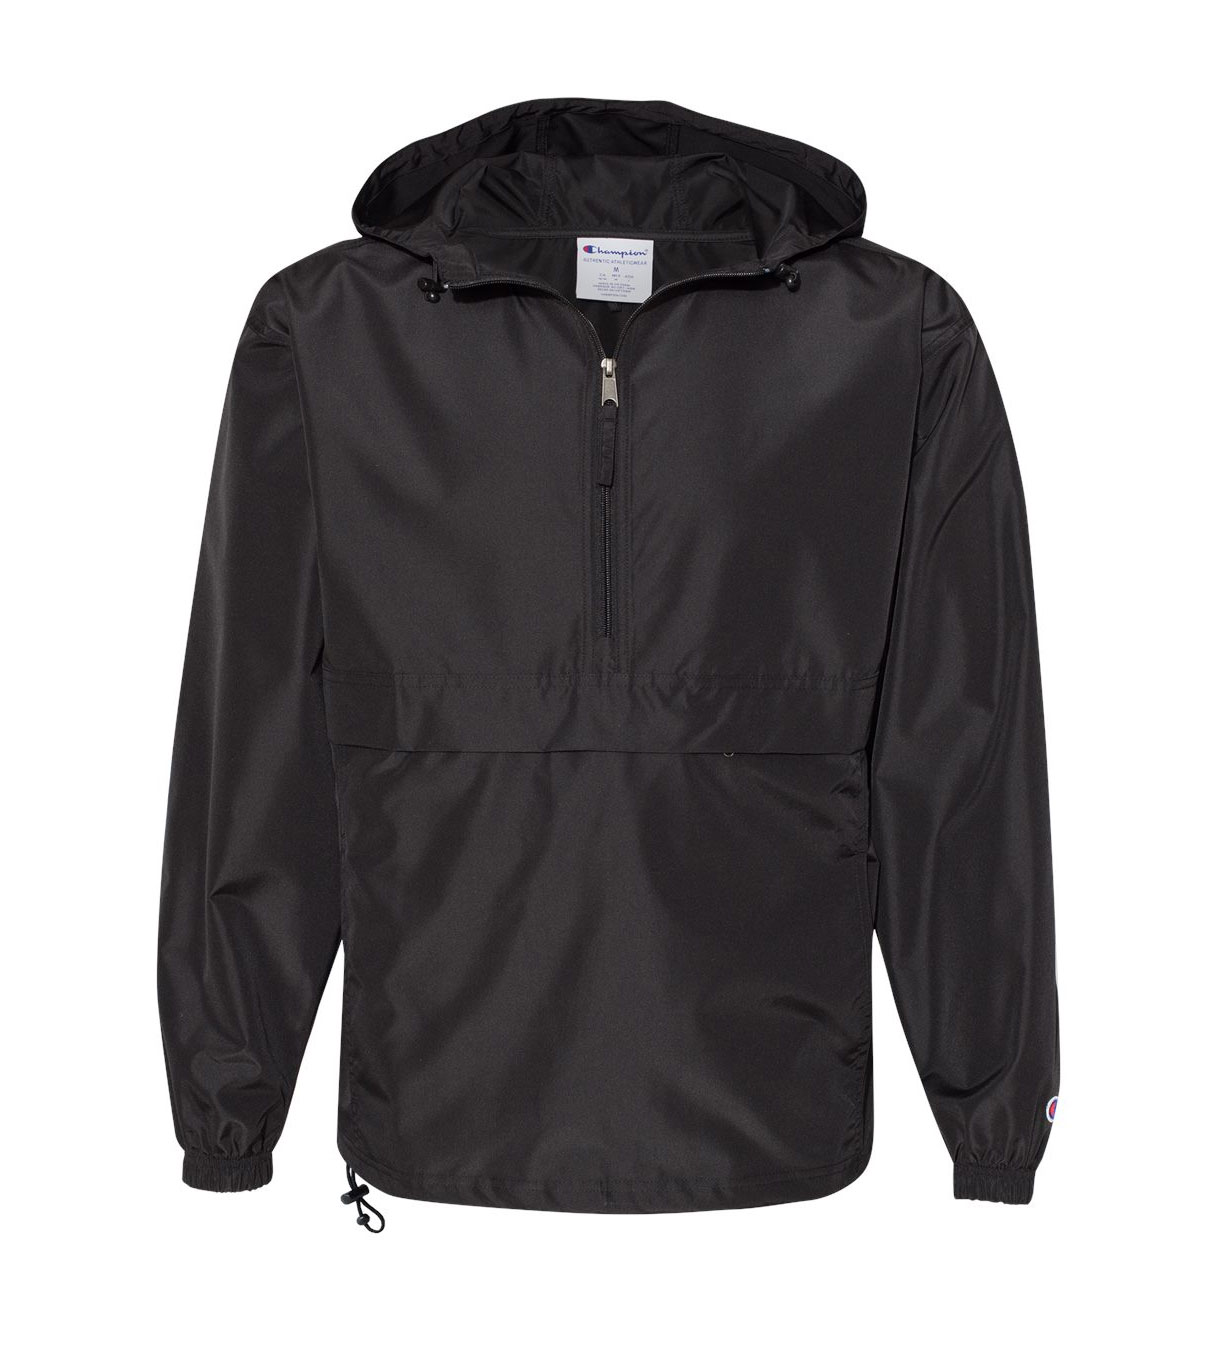 Champion Adult Packable Jacket